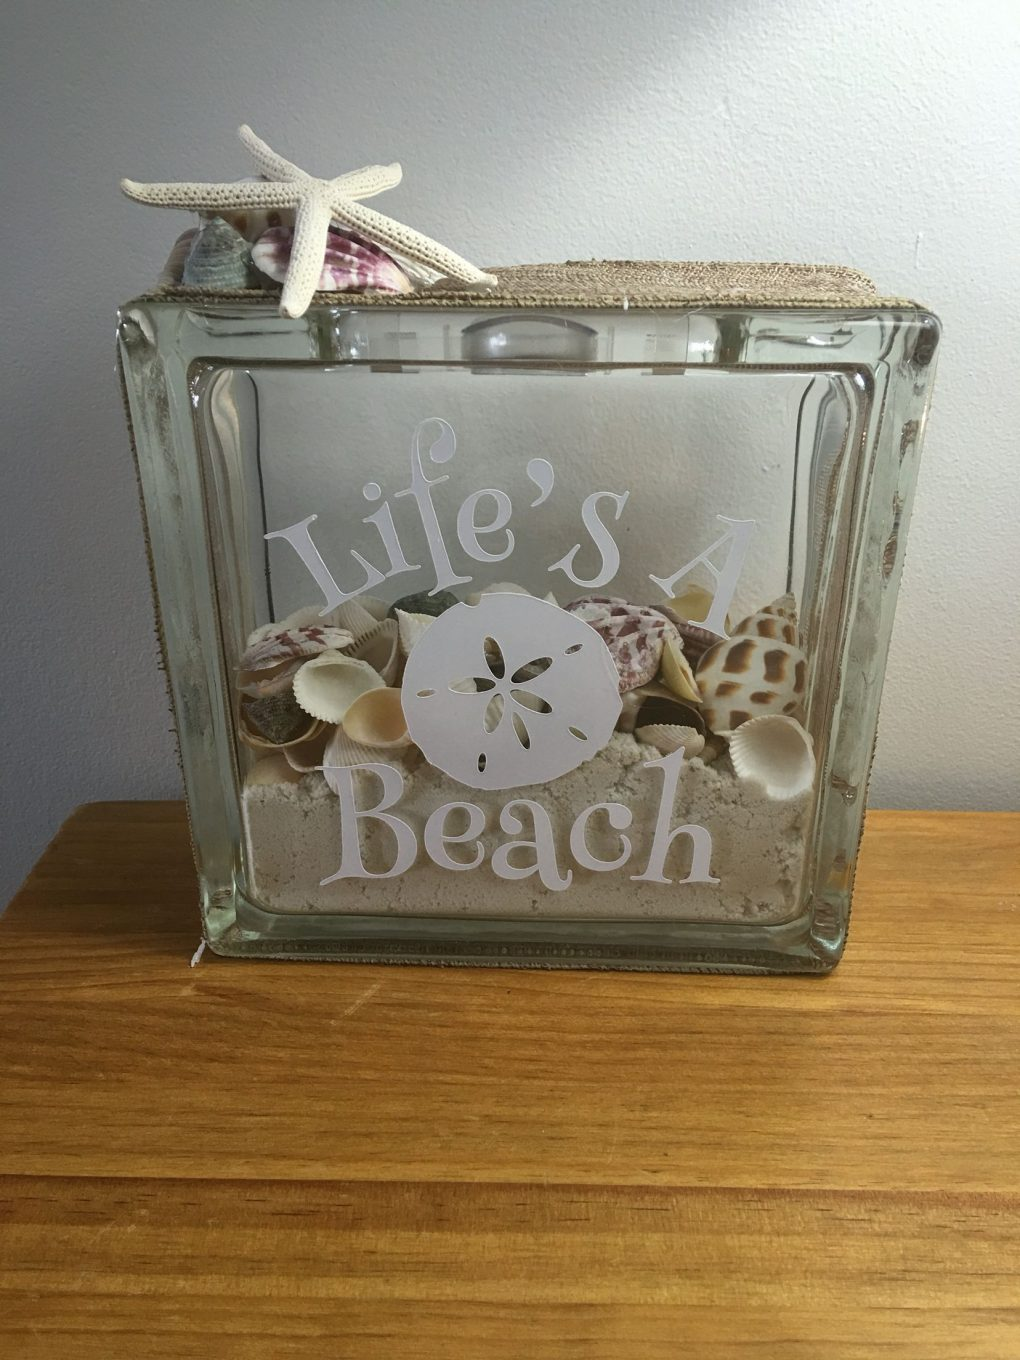 Glass block crafts-Home decor block with a beach theme. Sand and seashells are inside the block and viny lettering reading Life's a beach on the outside of the block.